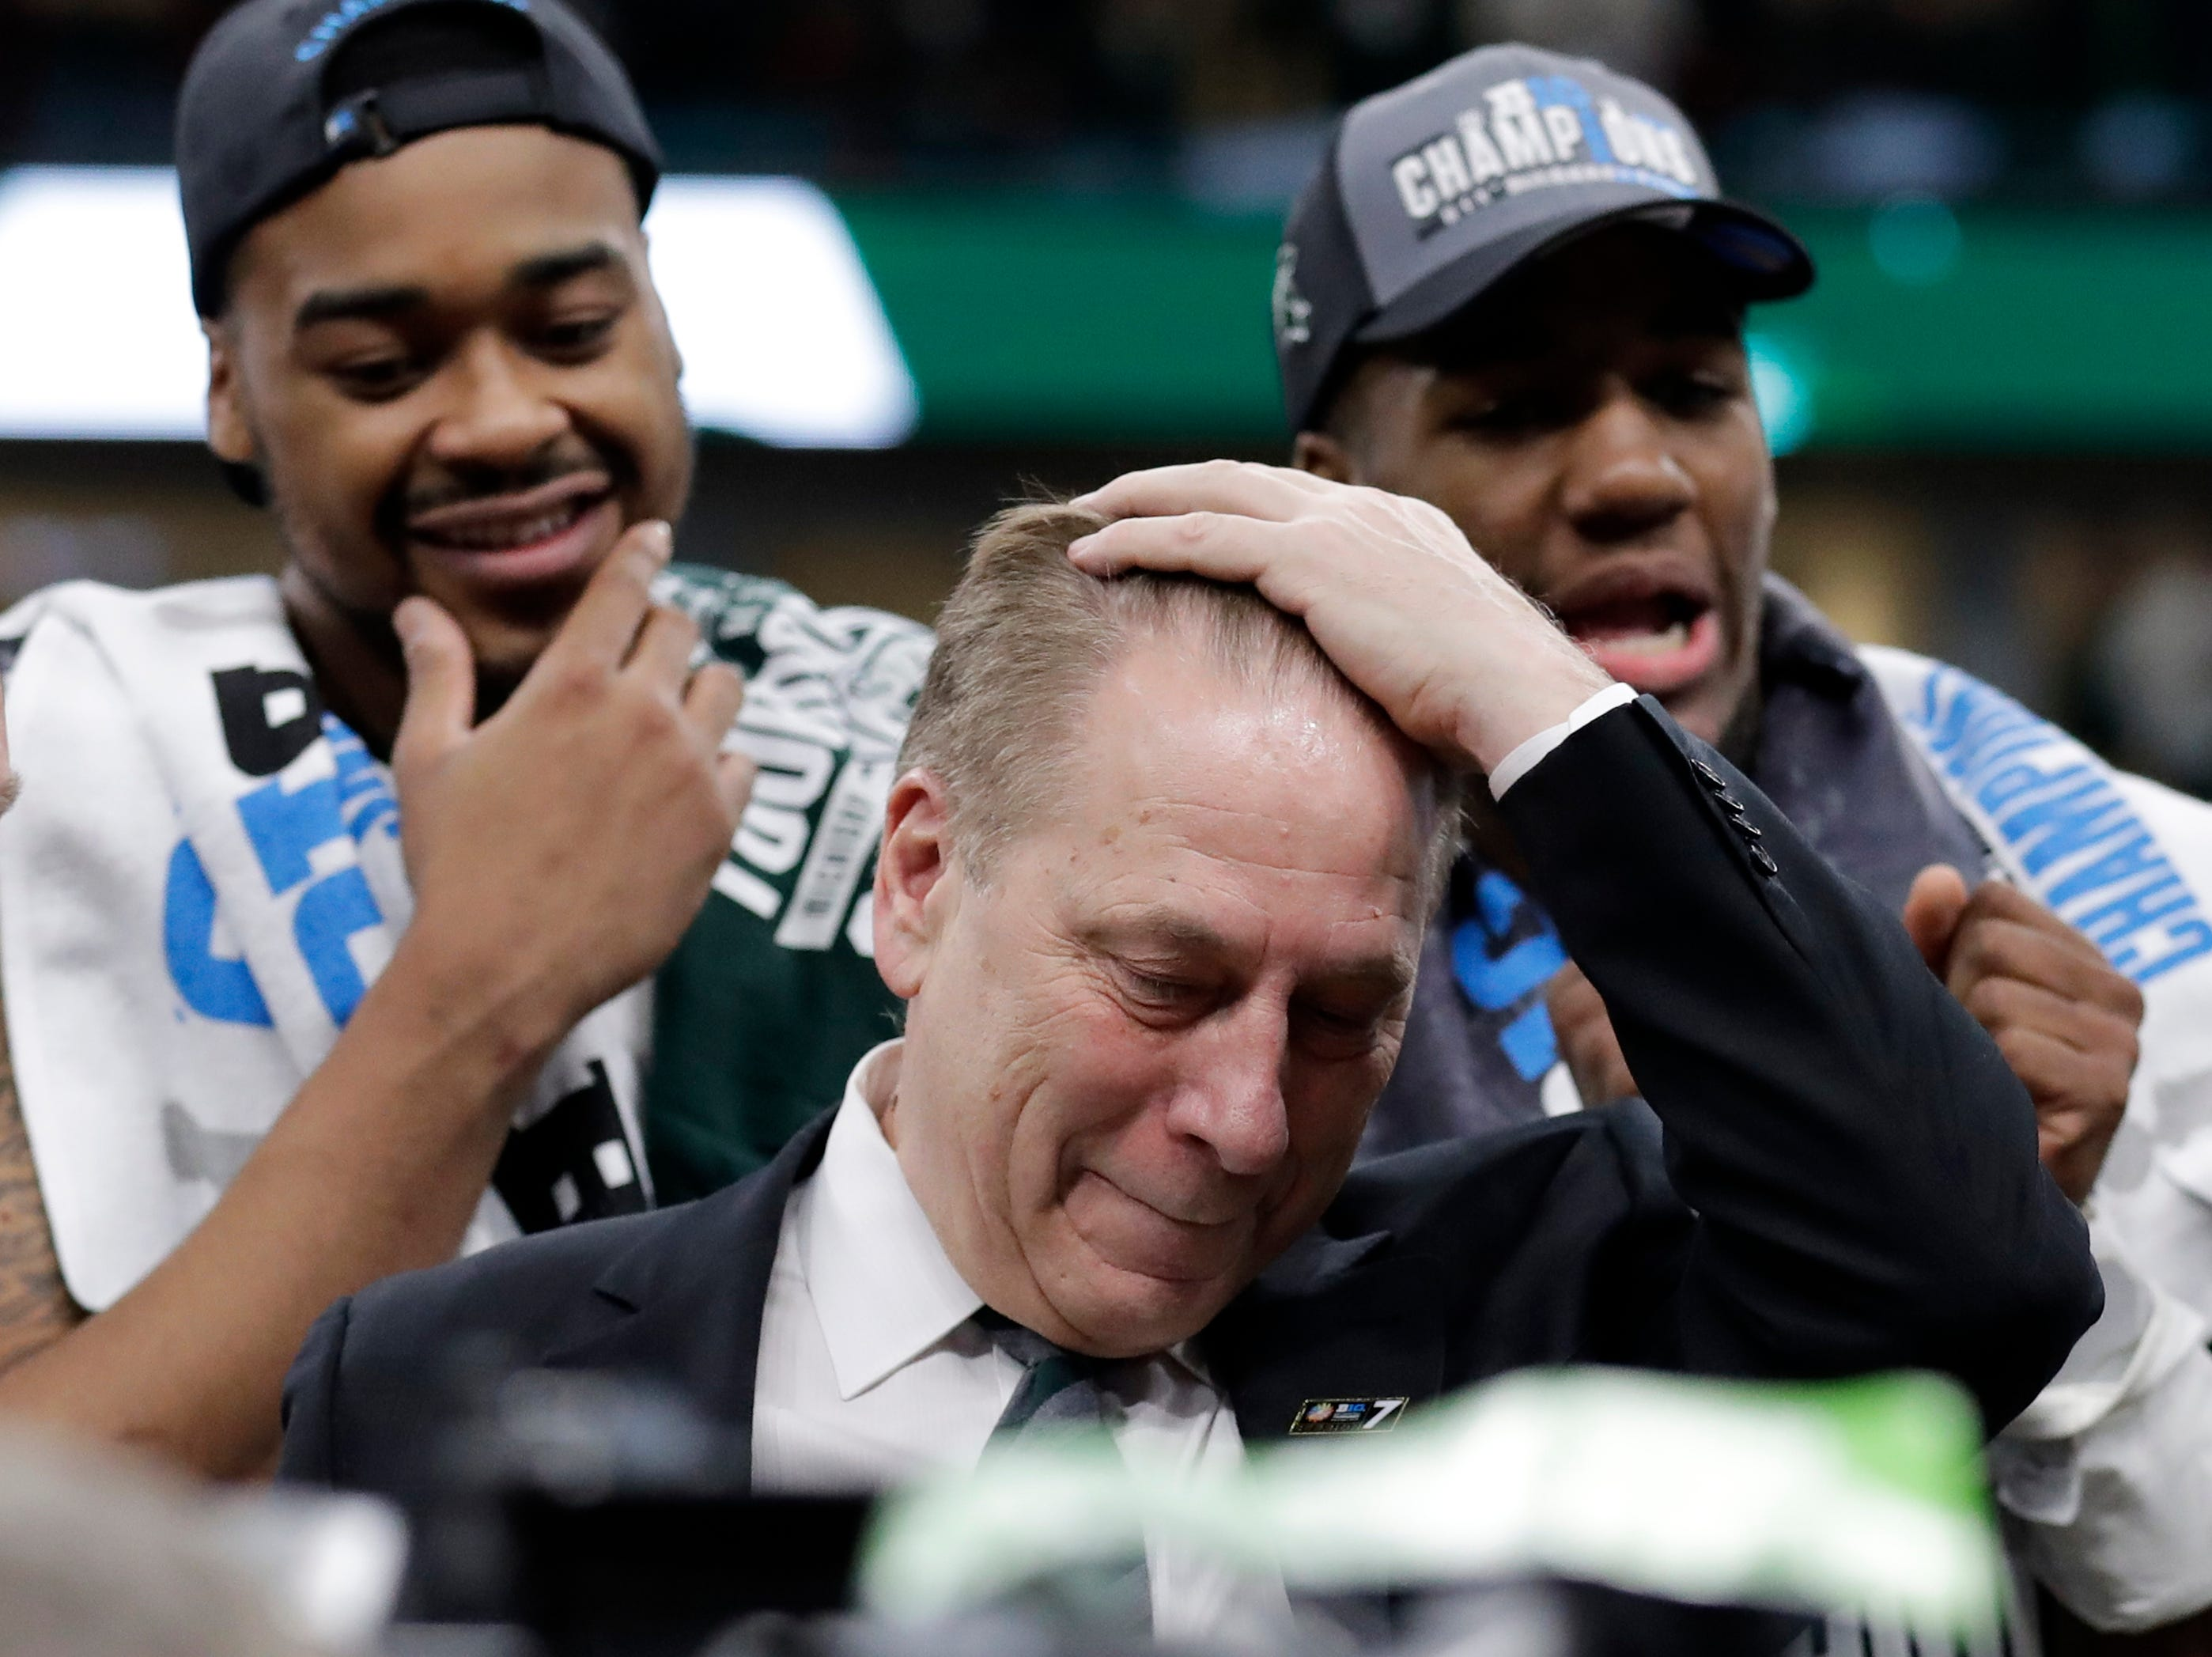 Michigan State head coach Tom Izzo celebrates with his team after defeating Michigan 65-60 in an NCAA college basketball championship game in the Big Ten Conference tournament, Sunday, March 17, 2019, in Chicago.